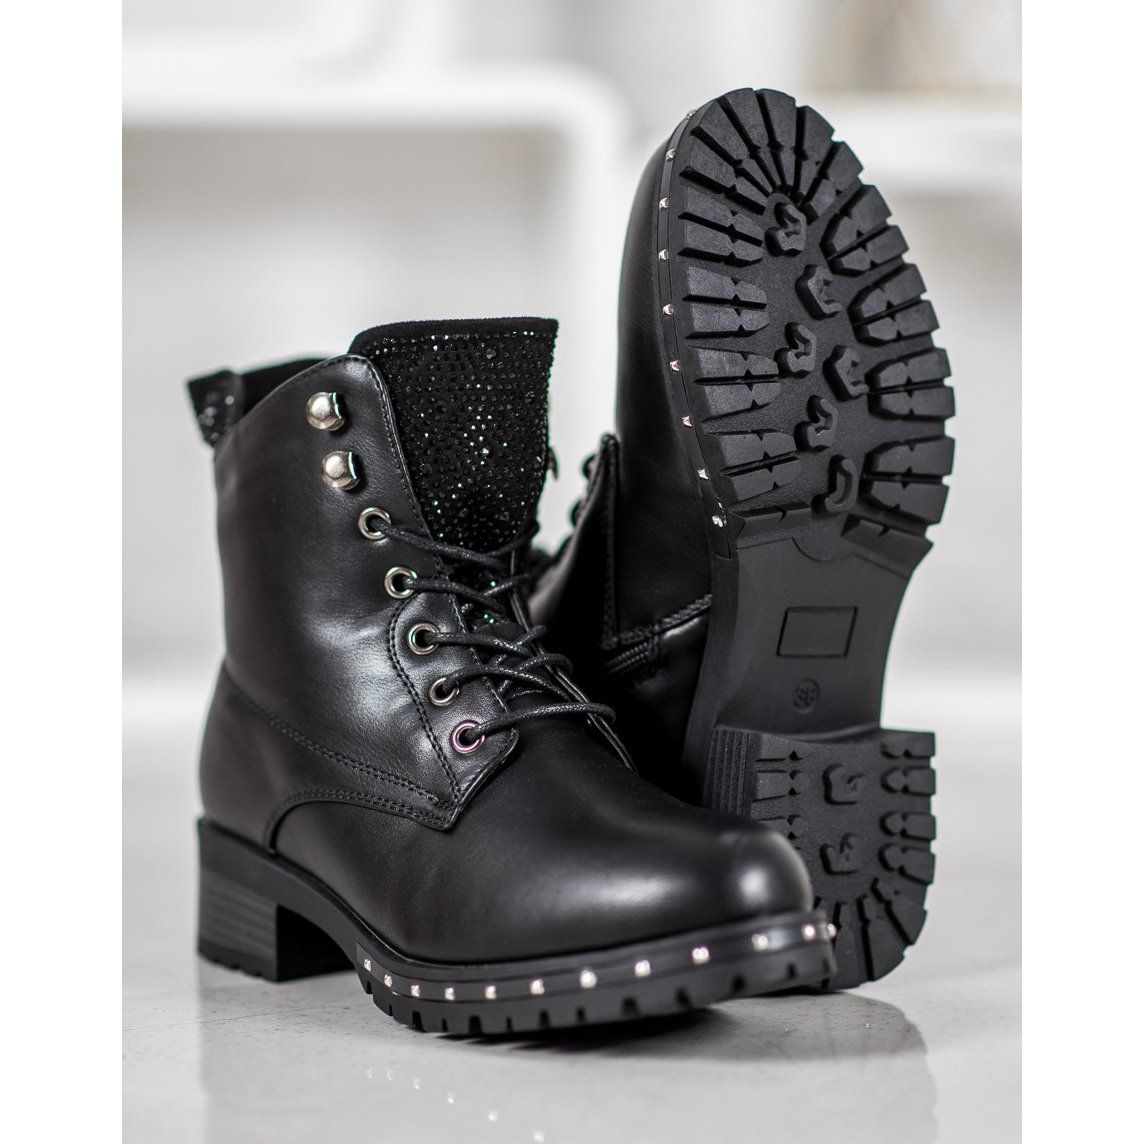 J Star Elegant Ankle Boots With Crystals Black Classic Black Boots Boots Black Boots Women